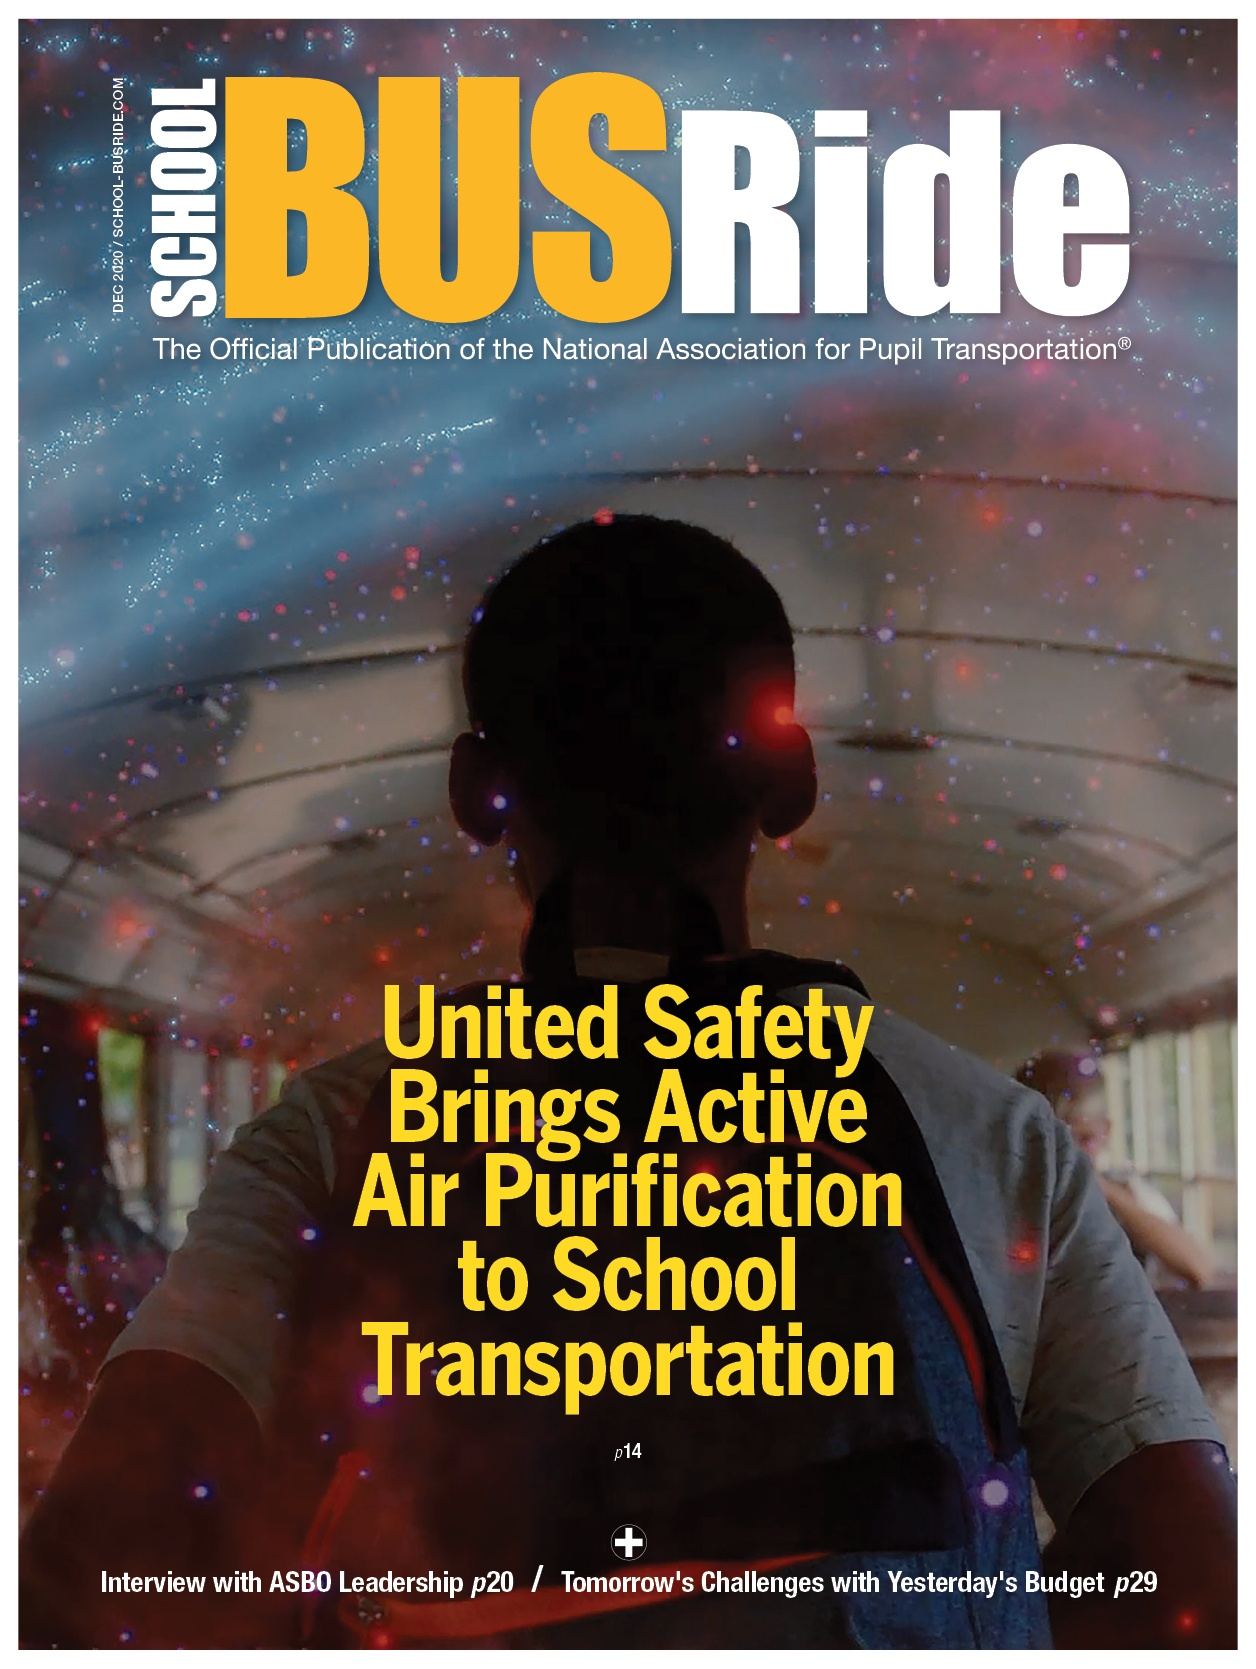 United Safety Brings Active Air Purification to School Transportation